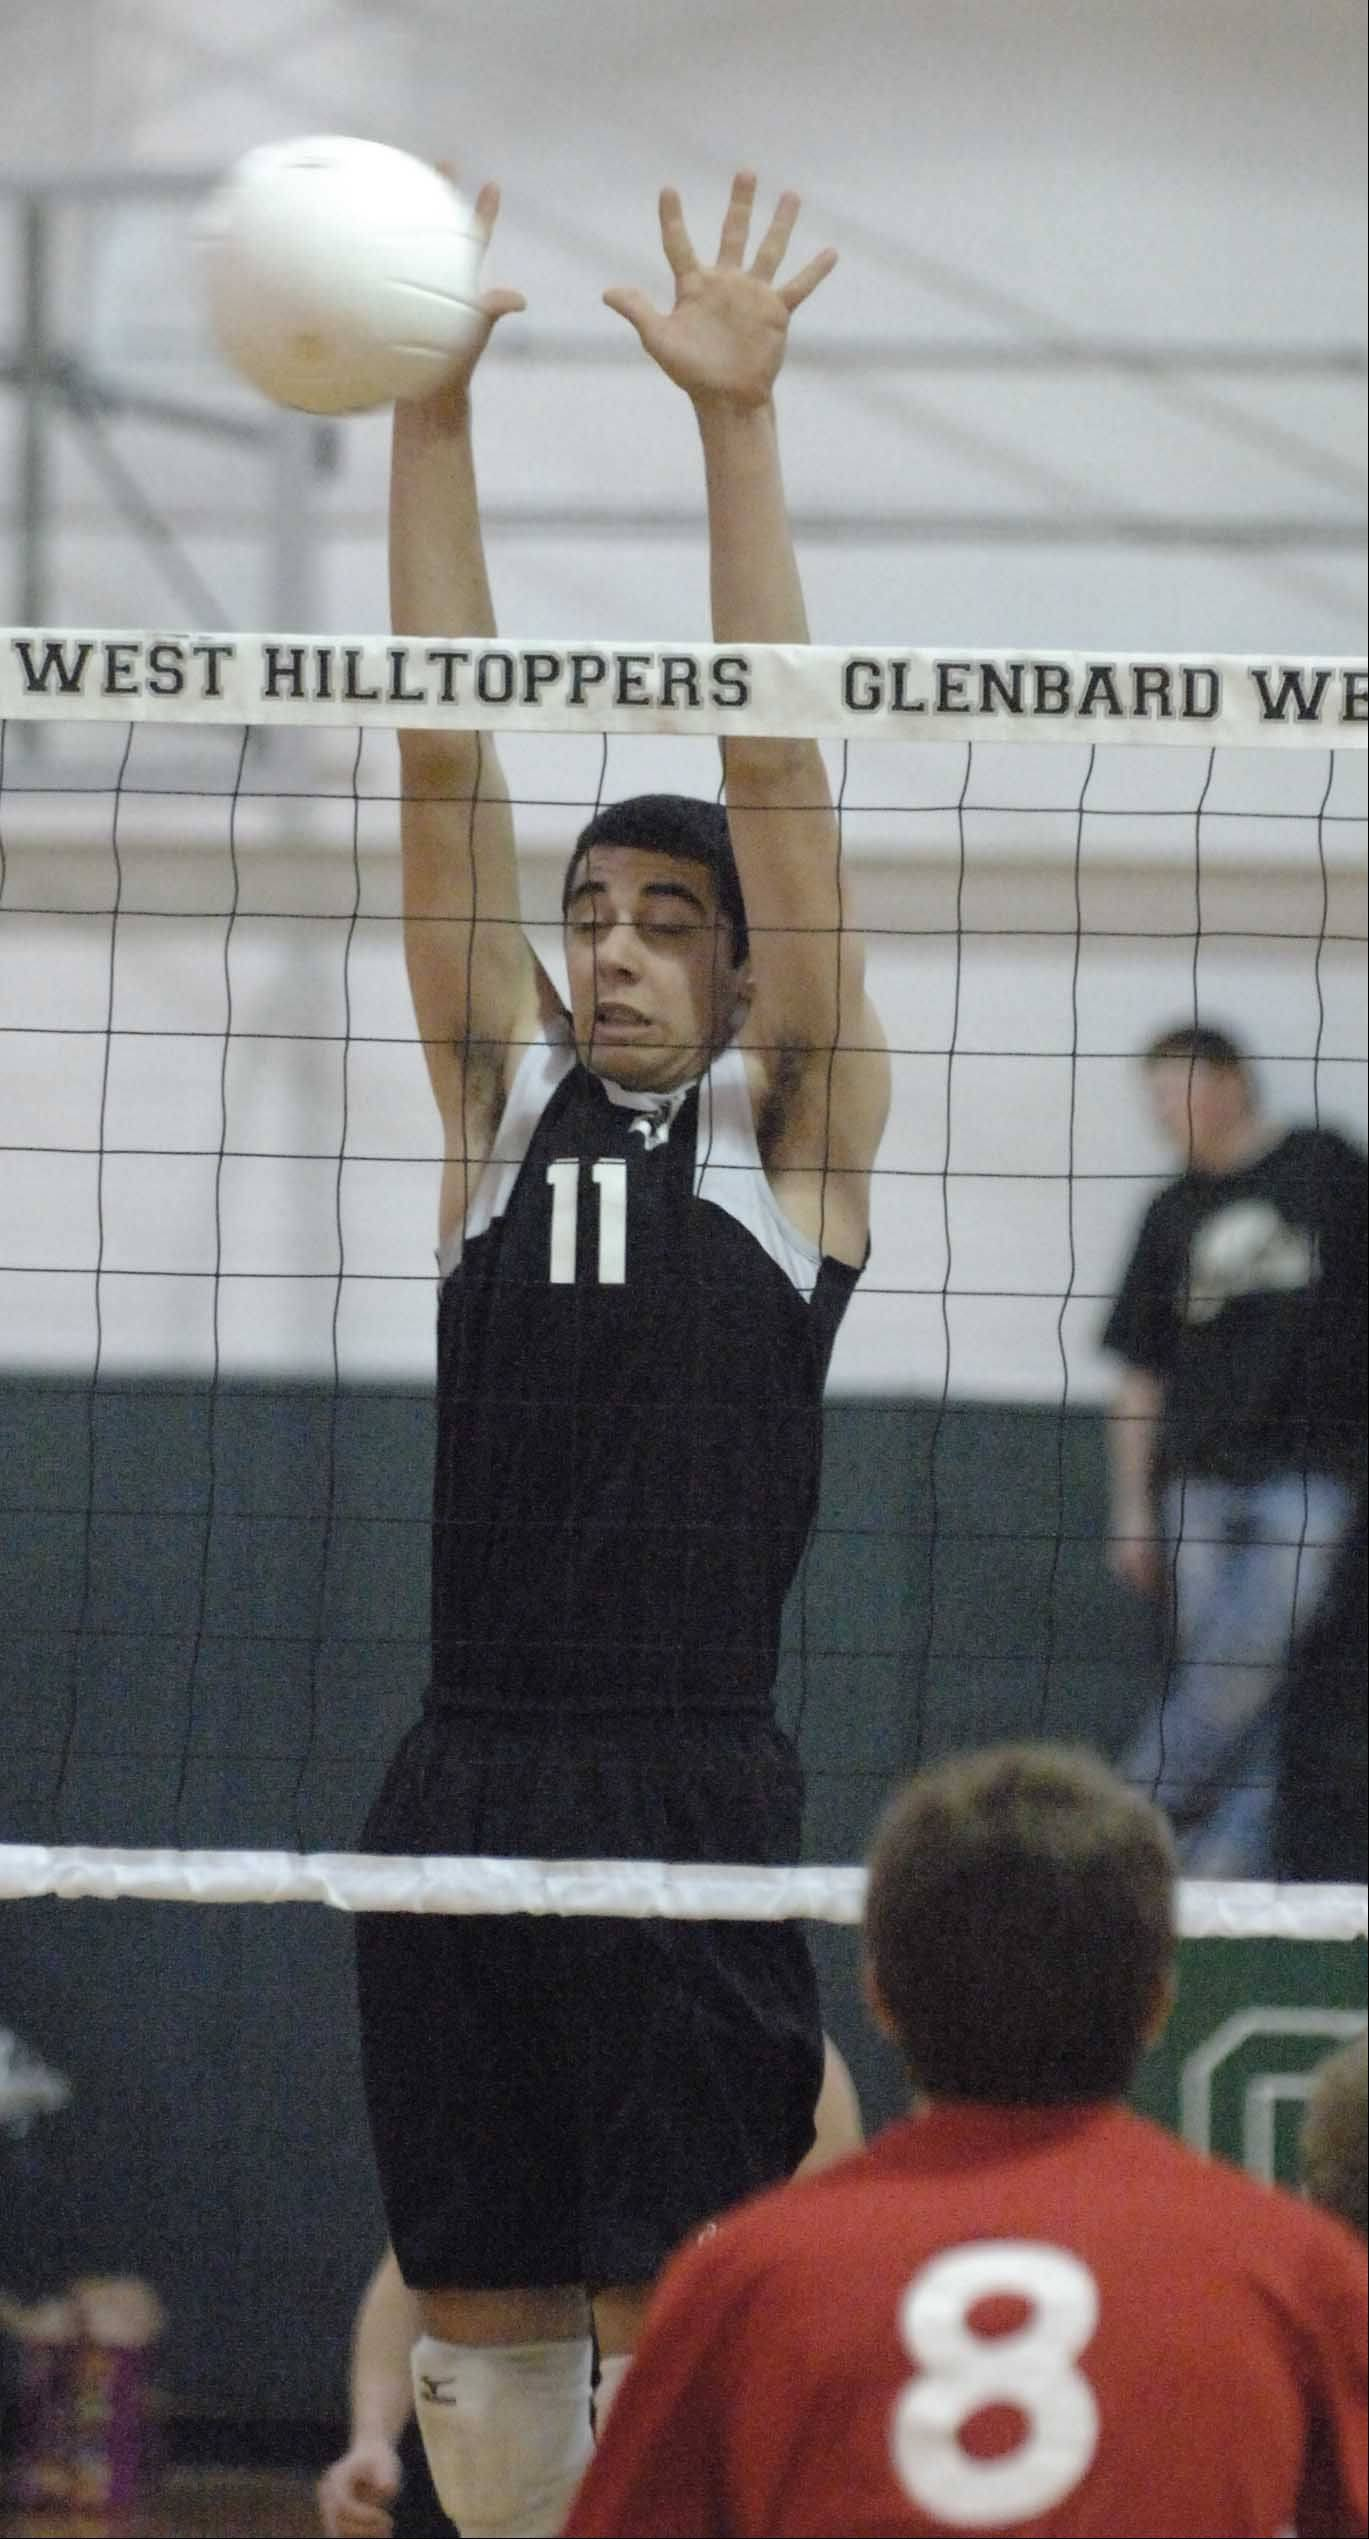 Kyle Blane of Glenbard West goes up for a block during the Hinsdale Central at Glenbard West boys volleyball game Tuesday.